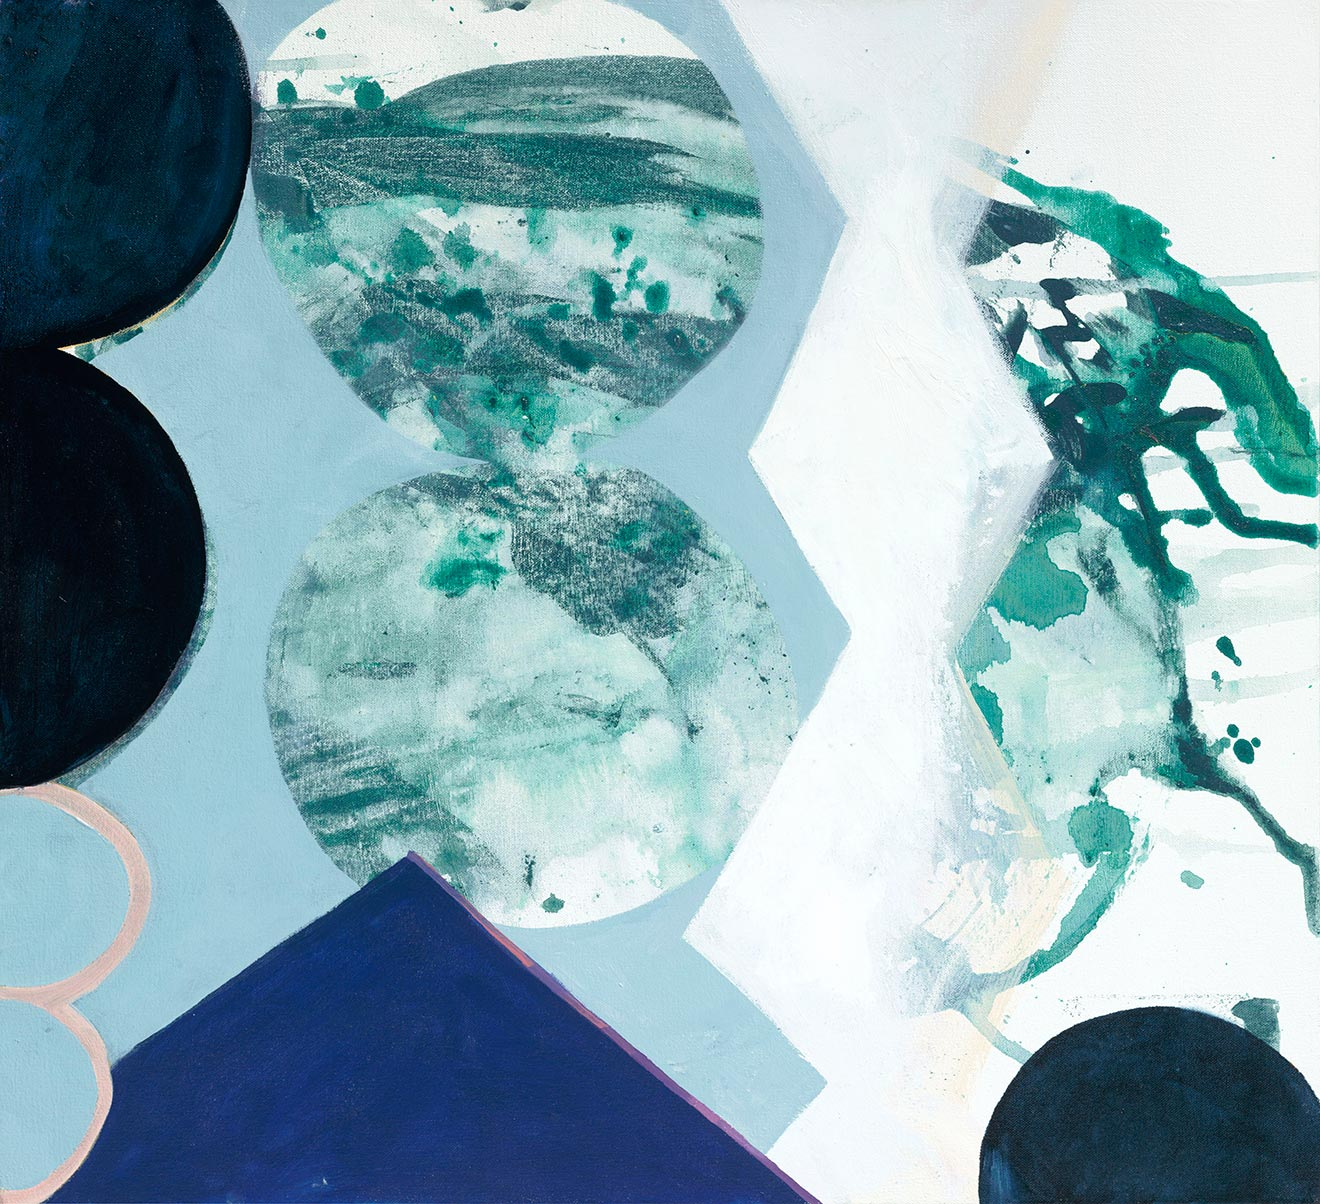 leanne-bunnell-interior-design-where-to-find-art-in-calgary-galleries-abstract